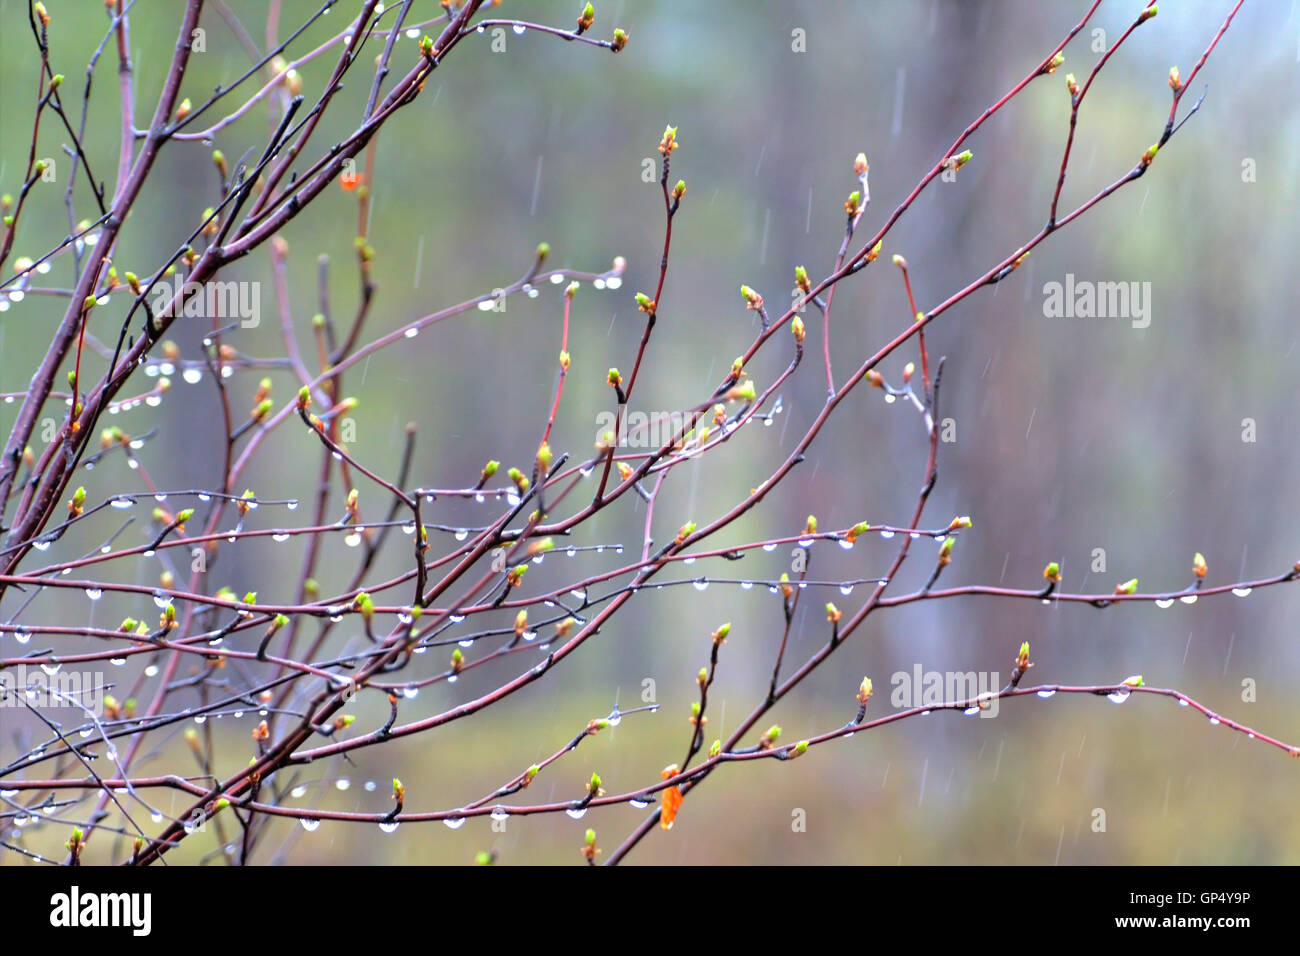 Rain drops and fog build up on the branches. Posting closeup camera - Stock Image